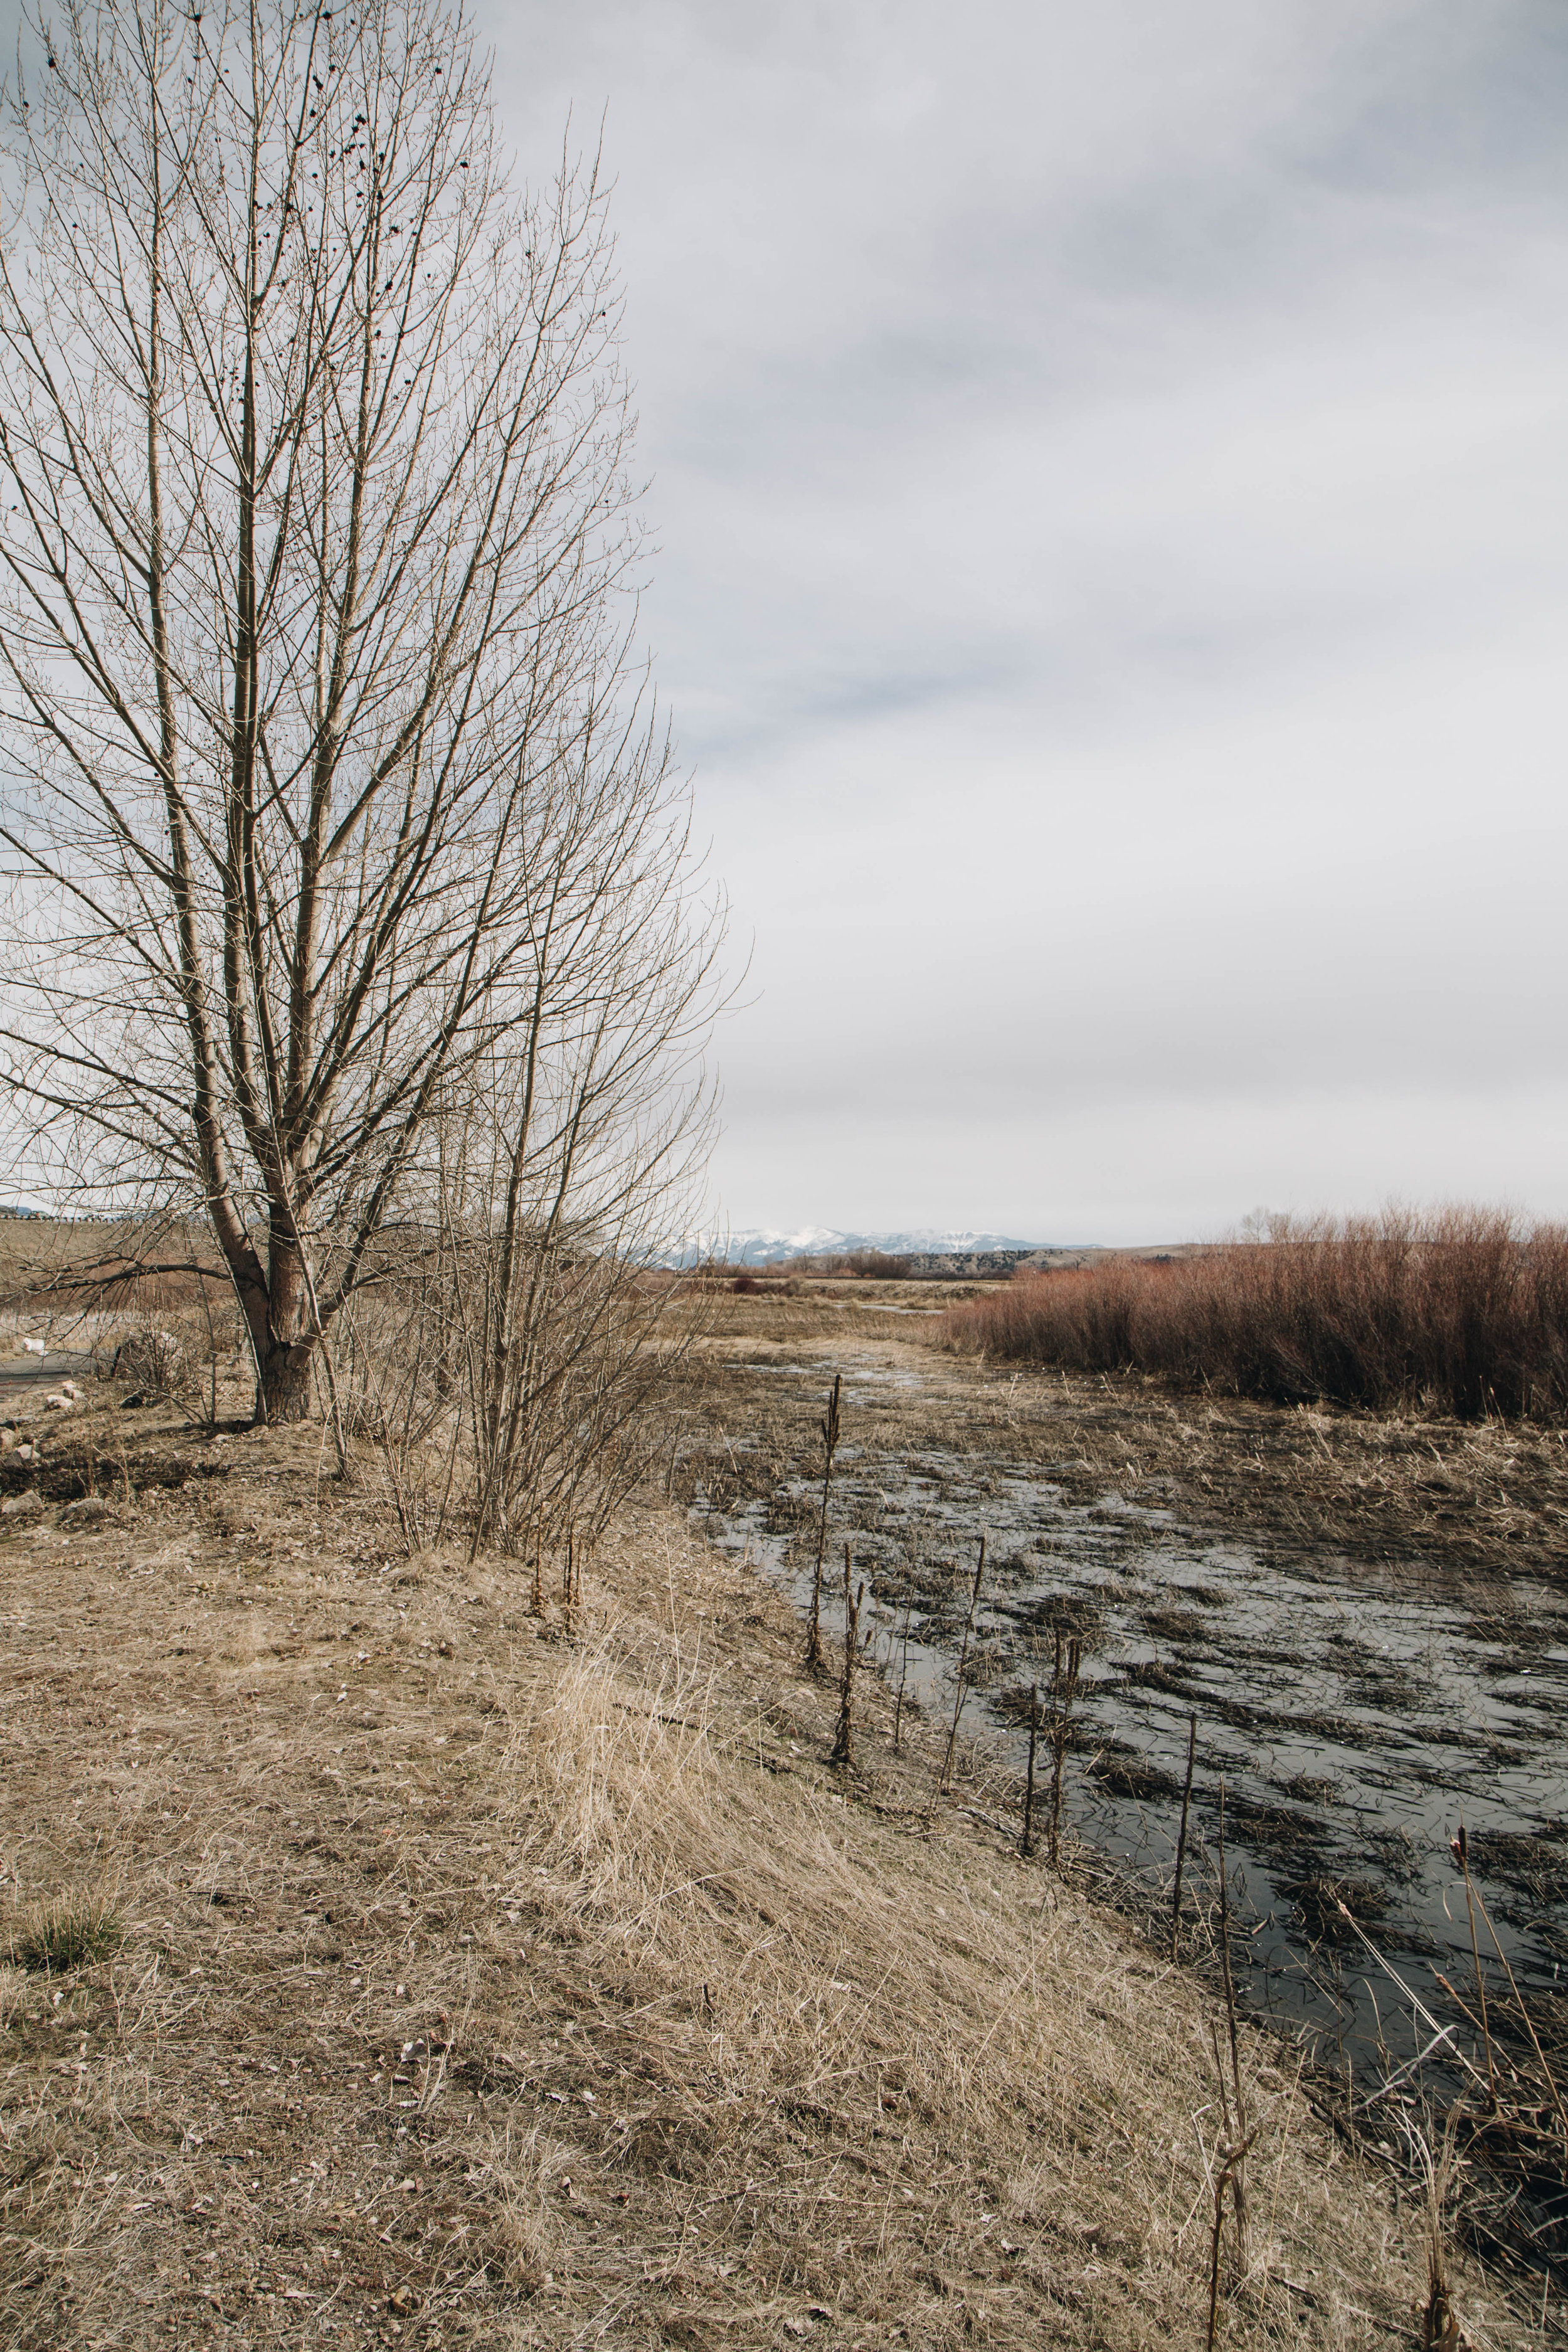 Headwaters Trail System Walking Trail near Three Forks, Montana in the Spring. Great for bikes, walking, jogging, children, and pets.